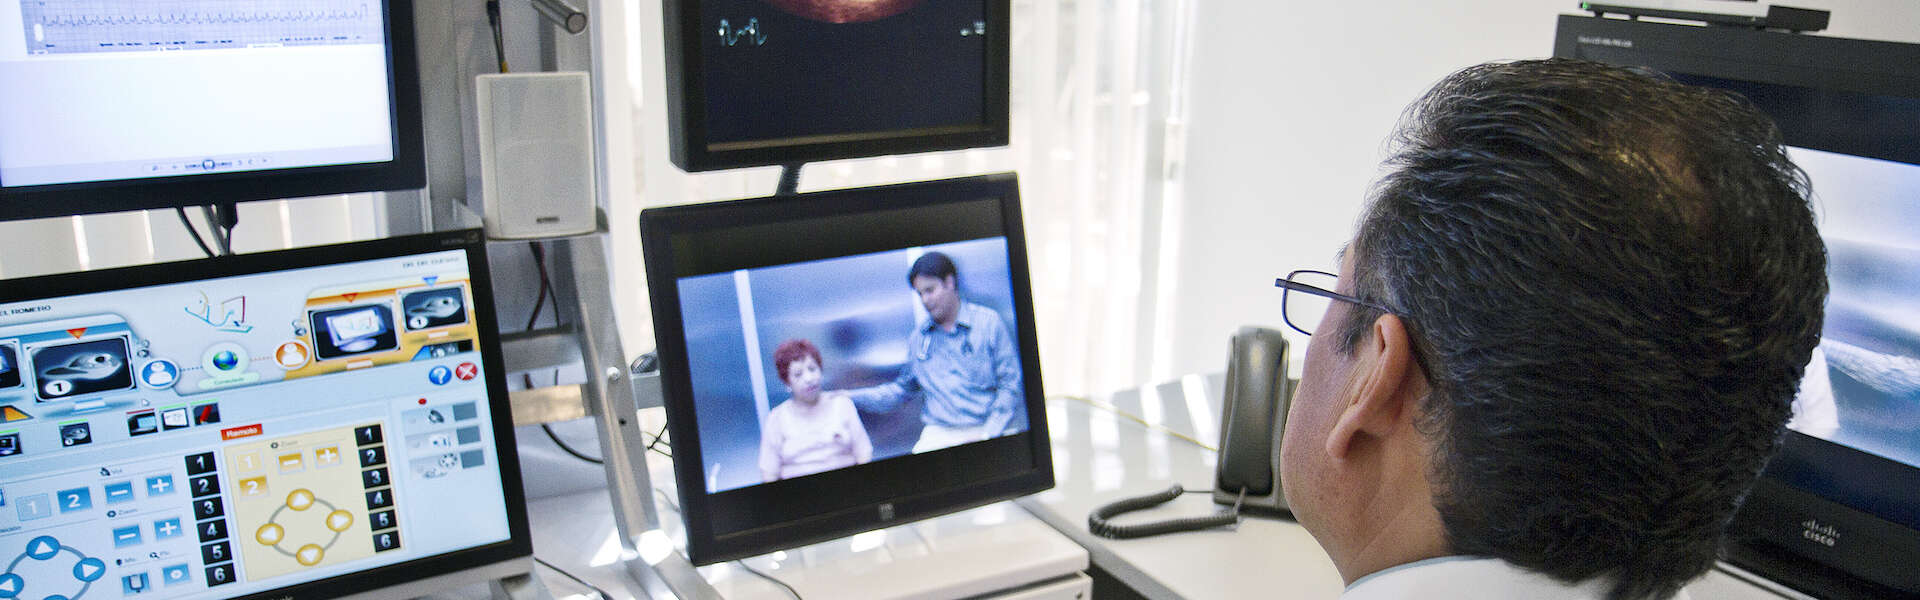 A cardiologist in Mexico has a pre-op consultation via video with a patient and her doctor who are 400 miles away in California.